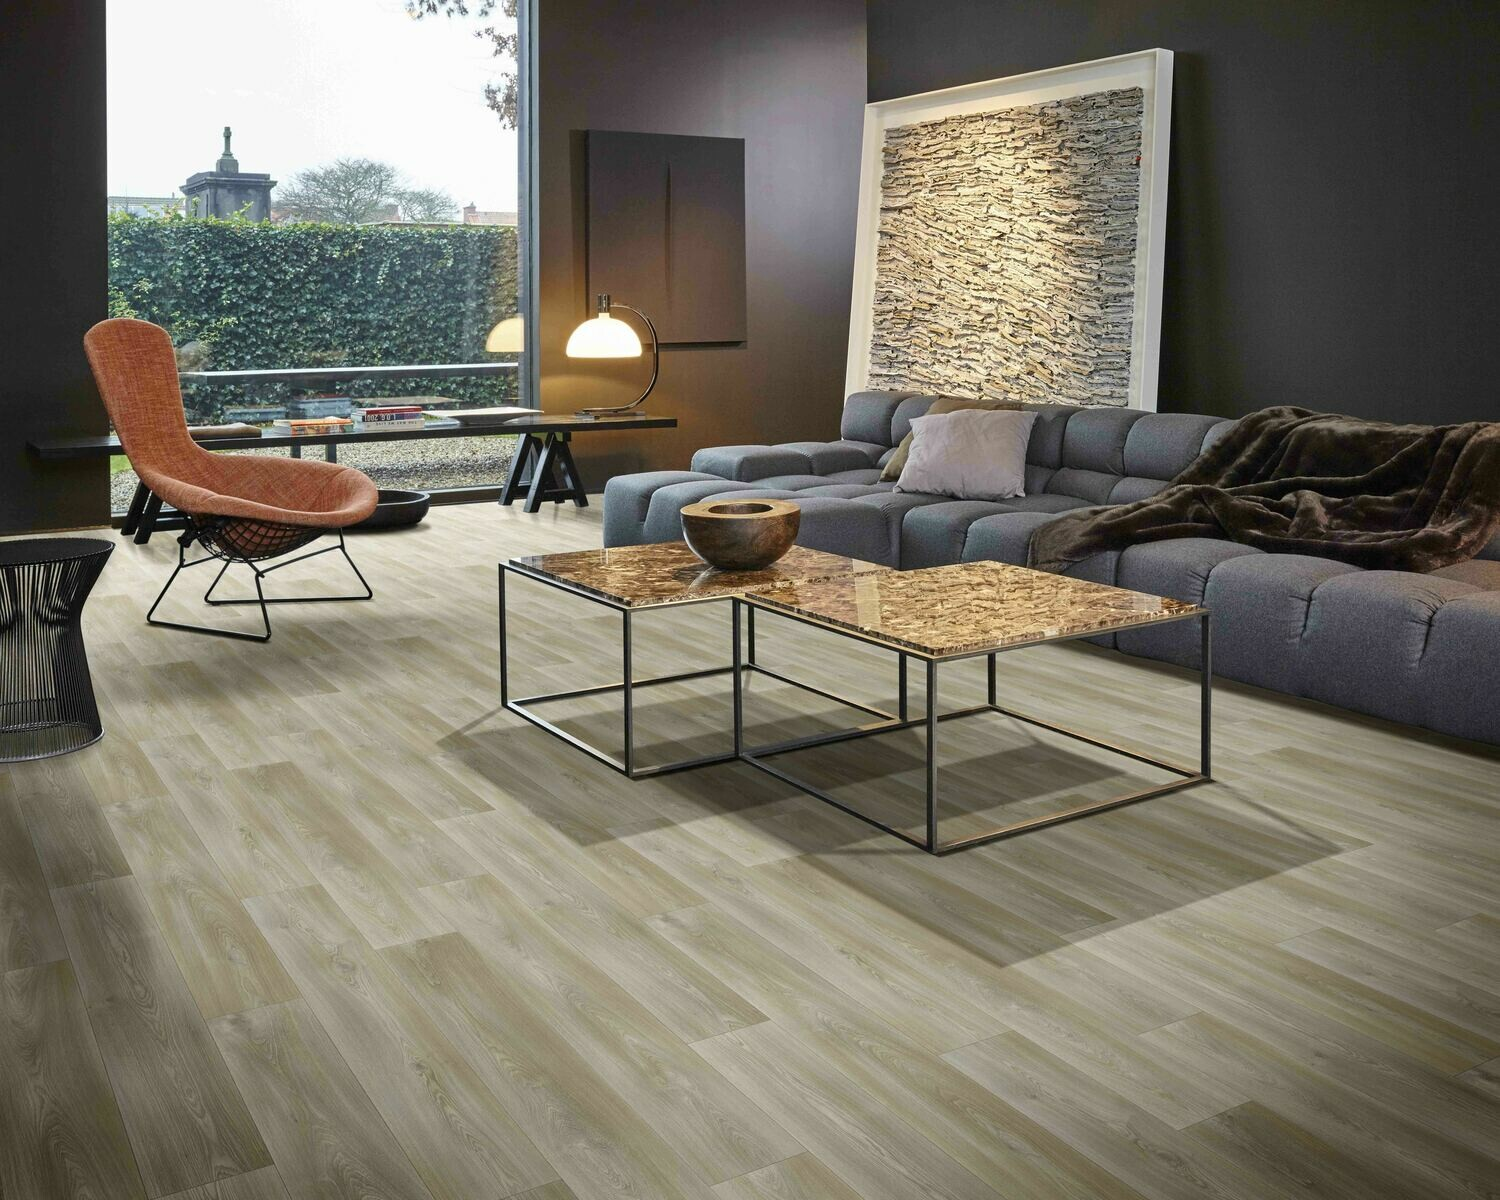 Bonita Blacktex Col Oak 939L 4M